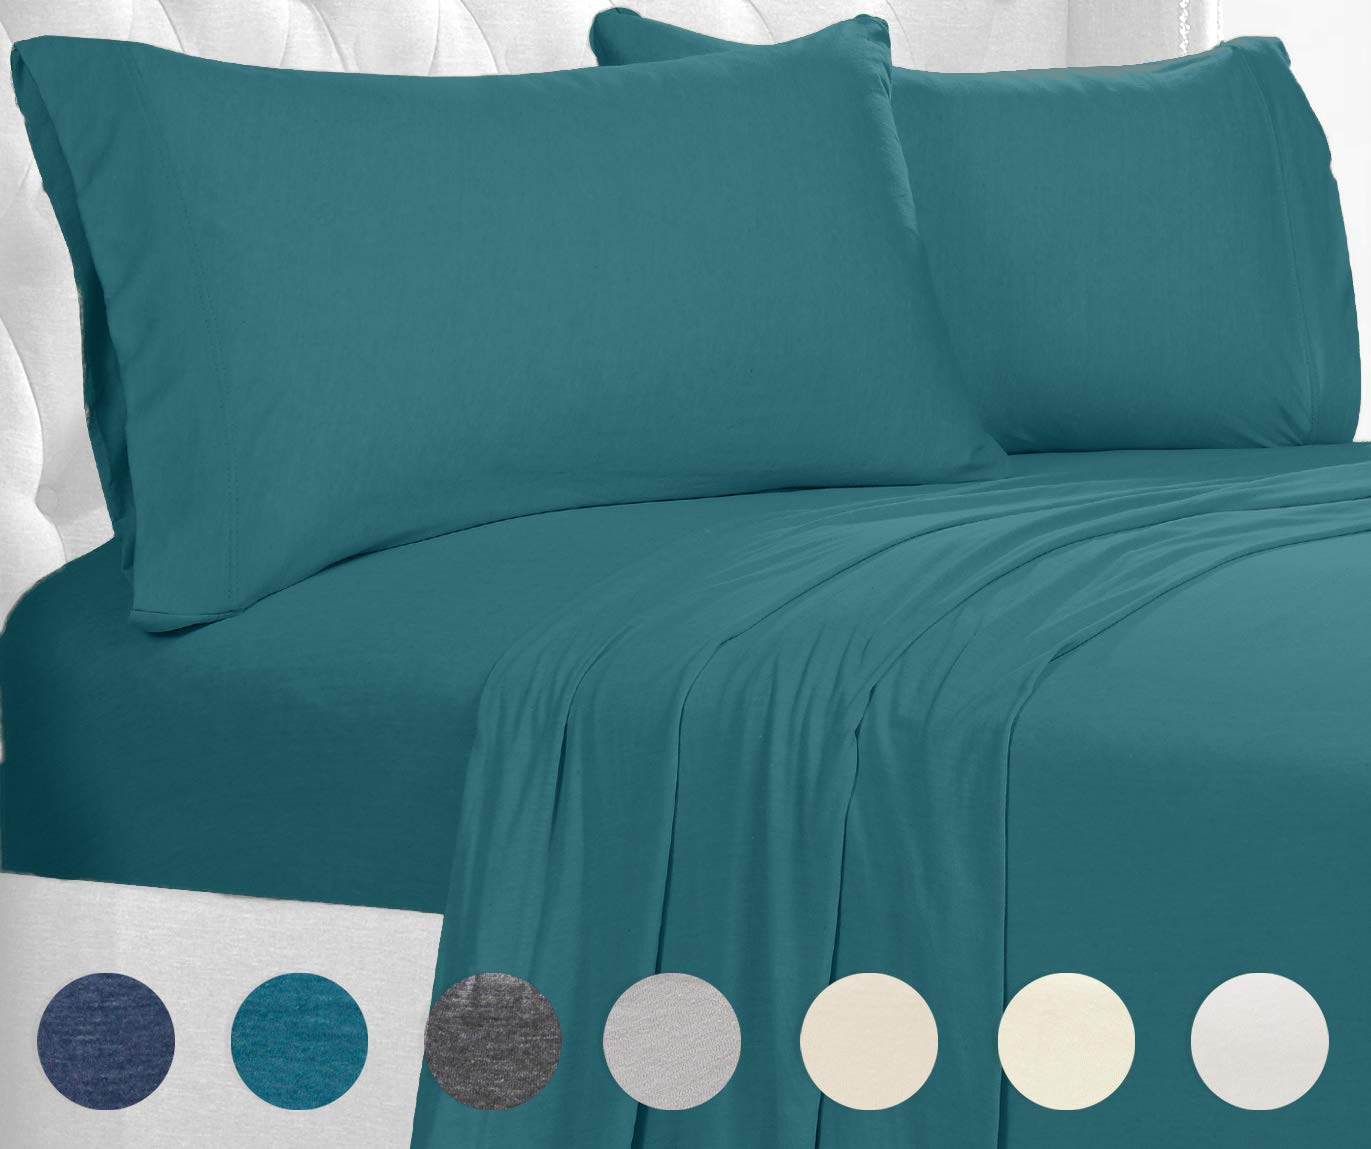 Posh Home Jersey Knit Ultra Soft Lightweight Cotton T-Shirt Comfortable Breathable Cooling Cozy Unisex All-Season Bed Sheet Set Easy Care (King, Teal)